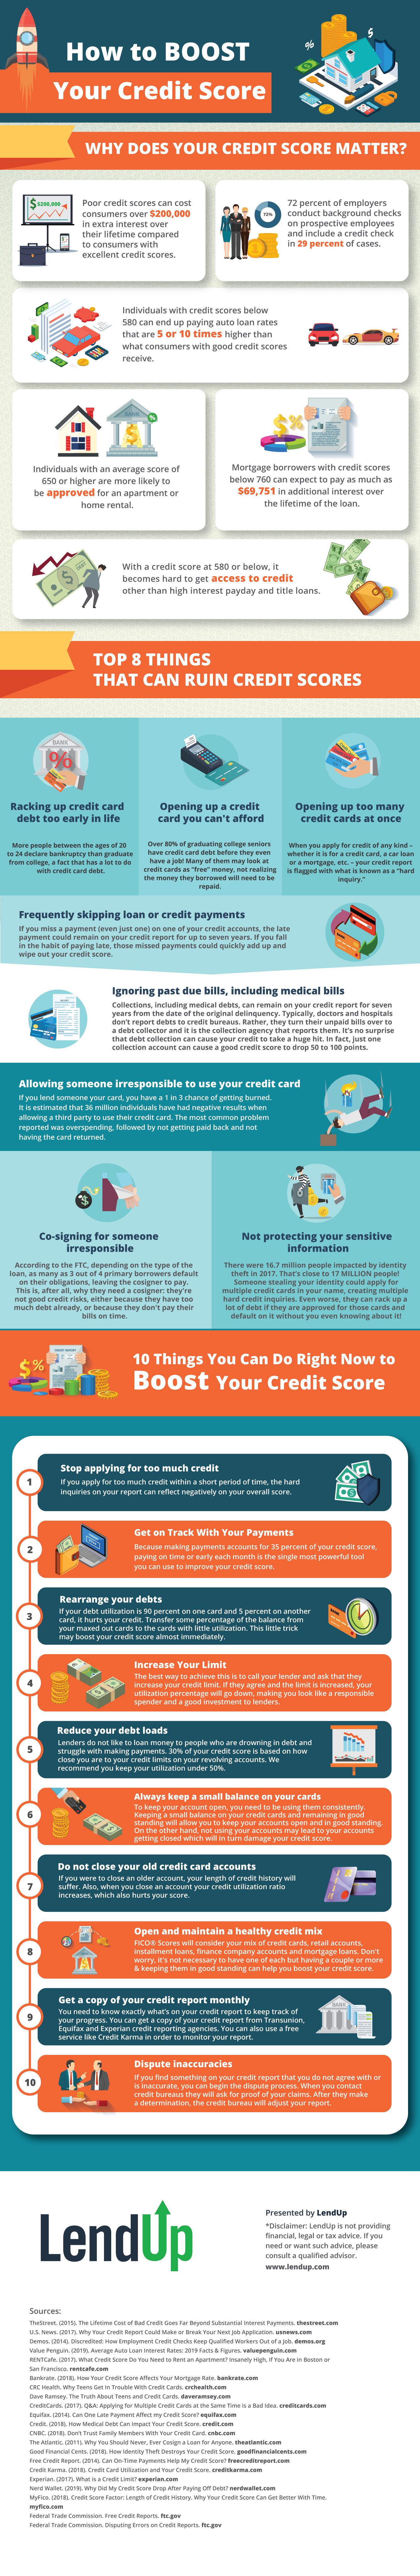 how to increase credit score infographic